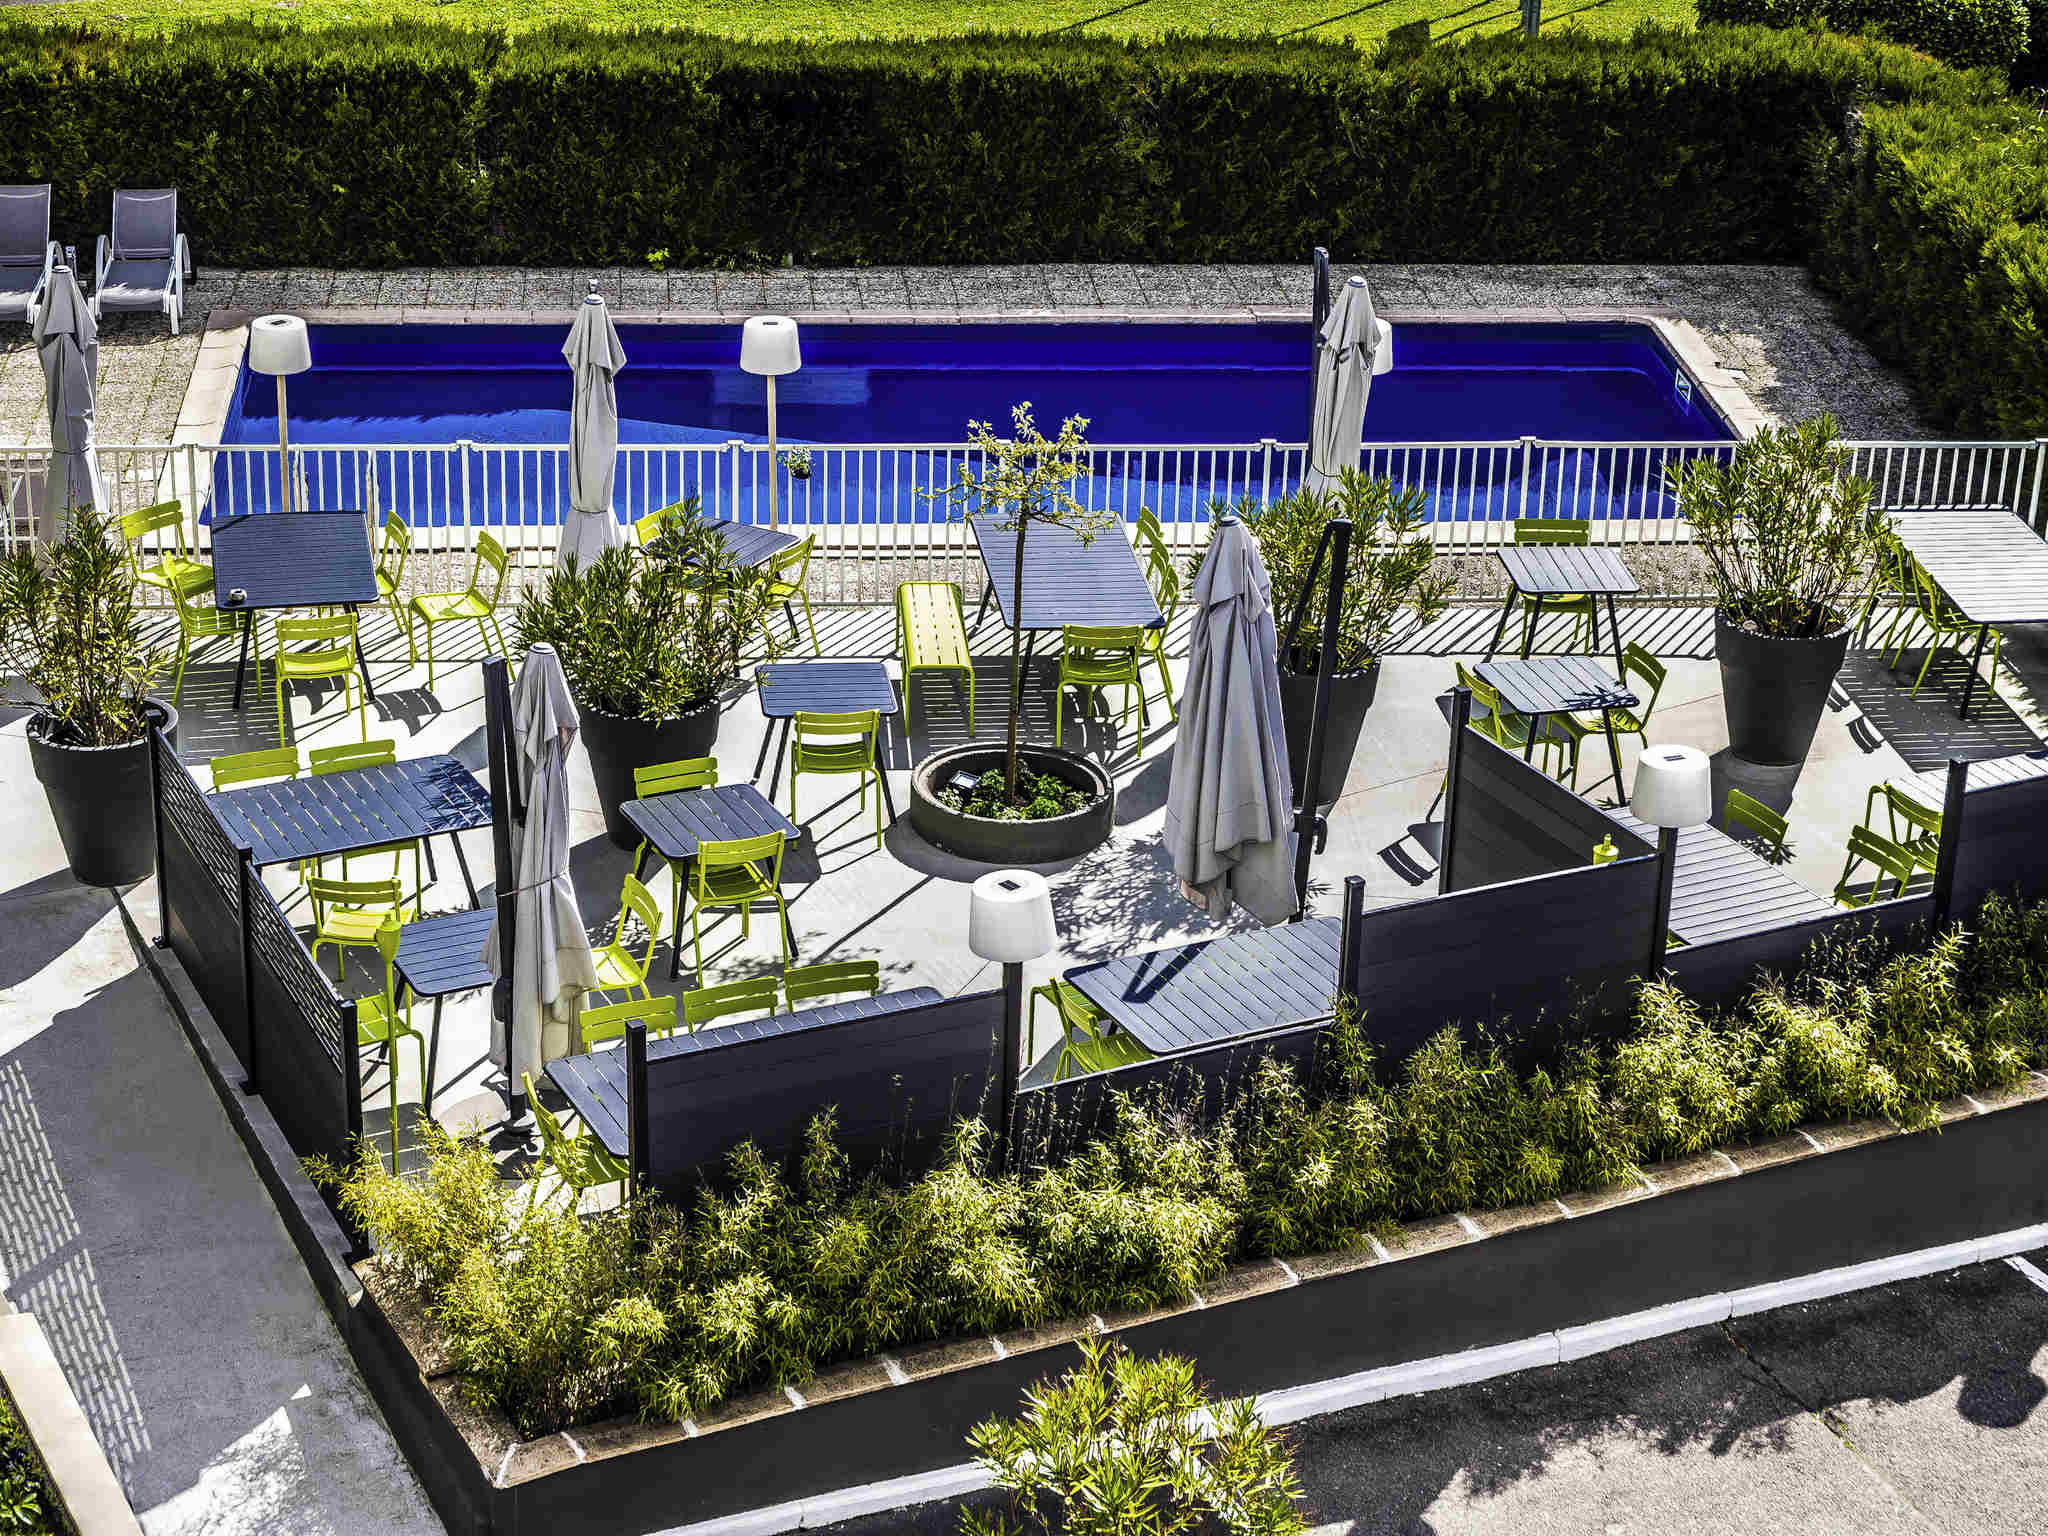 Hotel Pas Cher Chalons Sur Saone